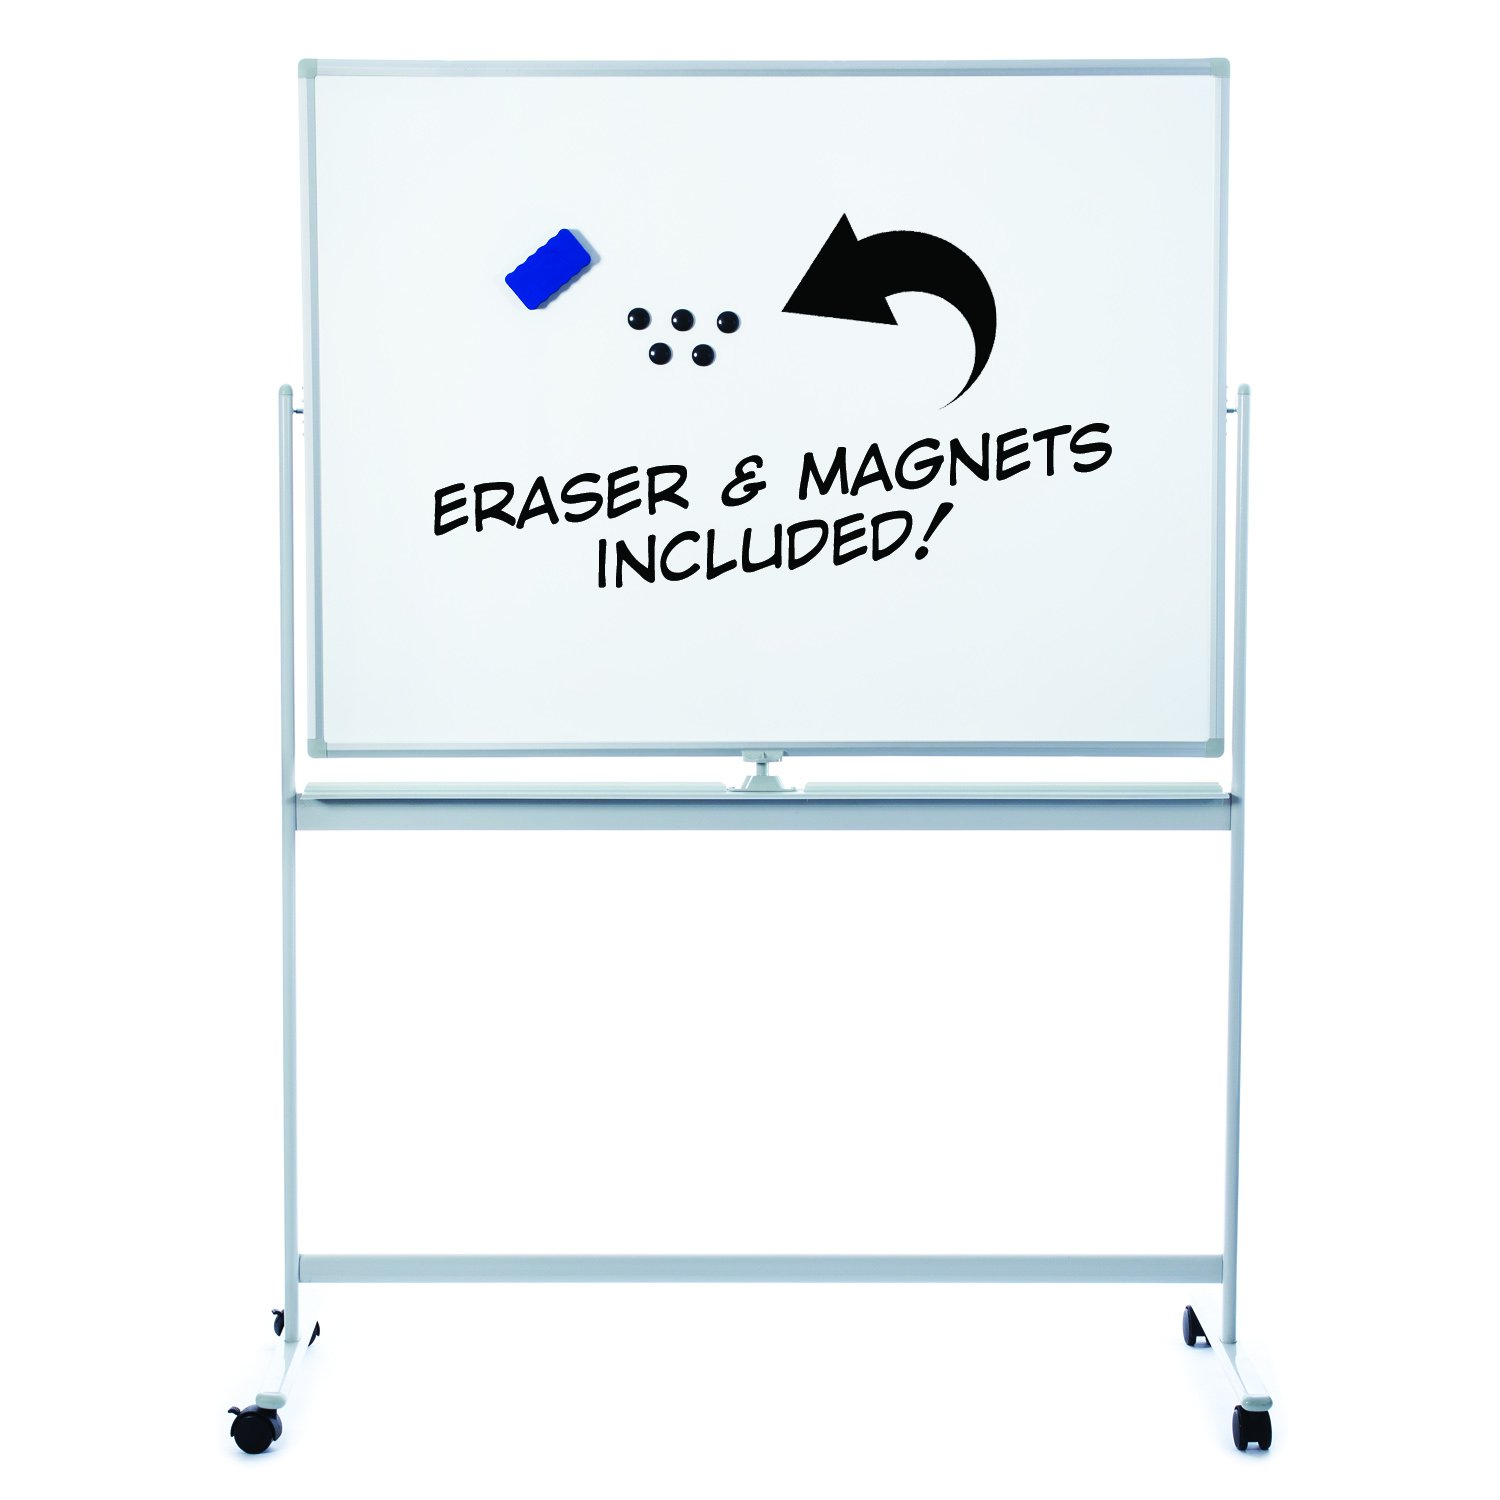 Large Mobile Magnetic Dry Erase Board with Magnets and Eraser | Easy Clean 48x36 Flip-Over Whiteboard on Rolling Wheels. Double Sided Portable Writing Board on Stand for Office, Classroom, or Home Use